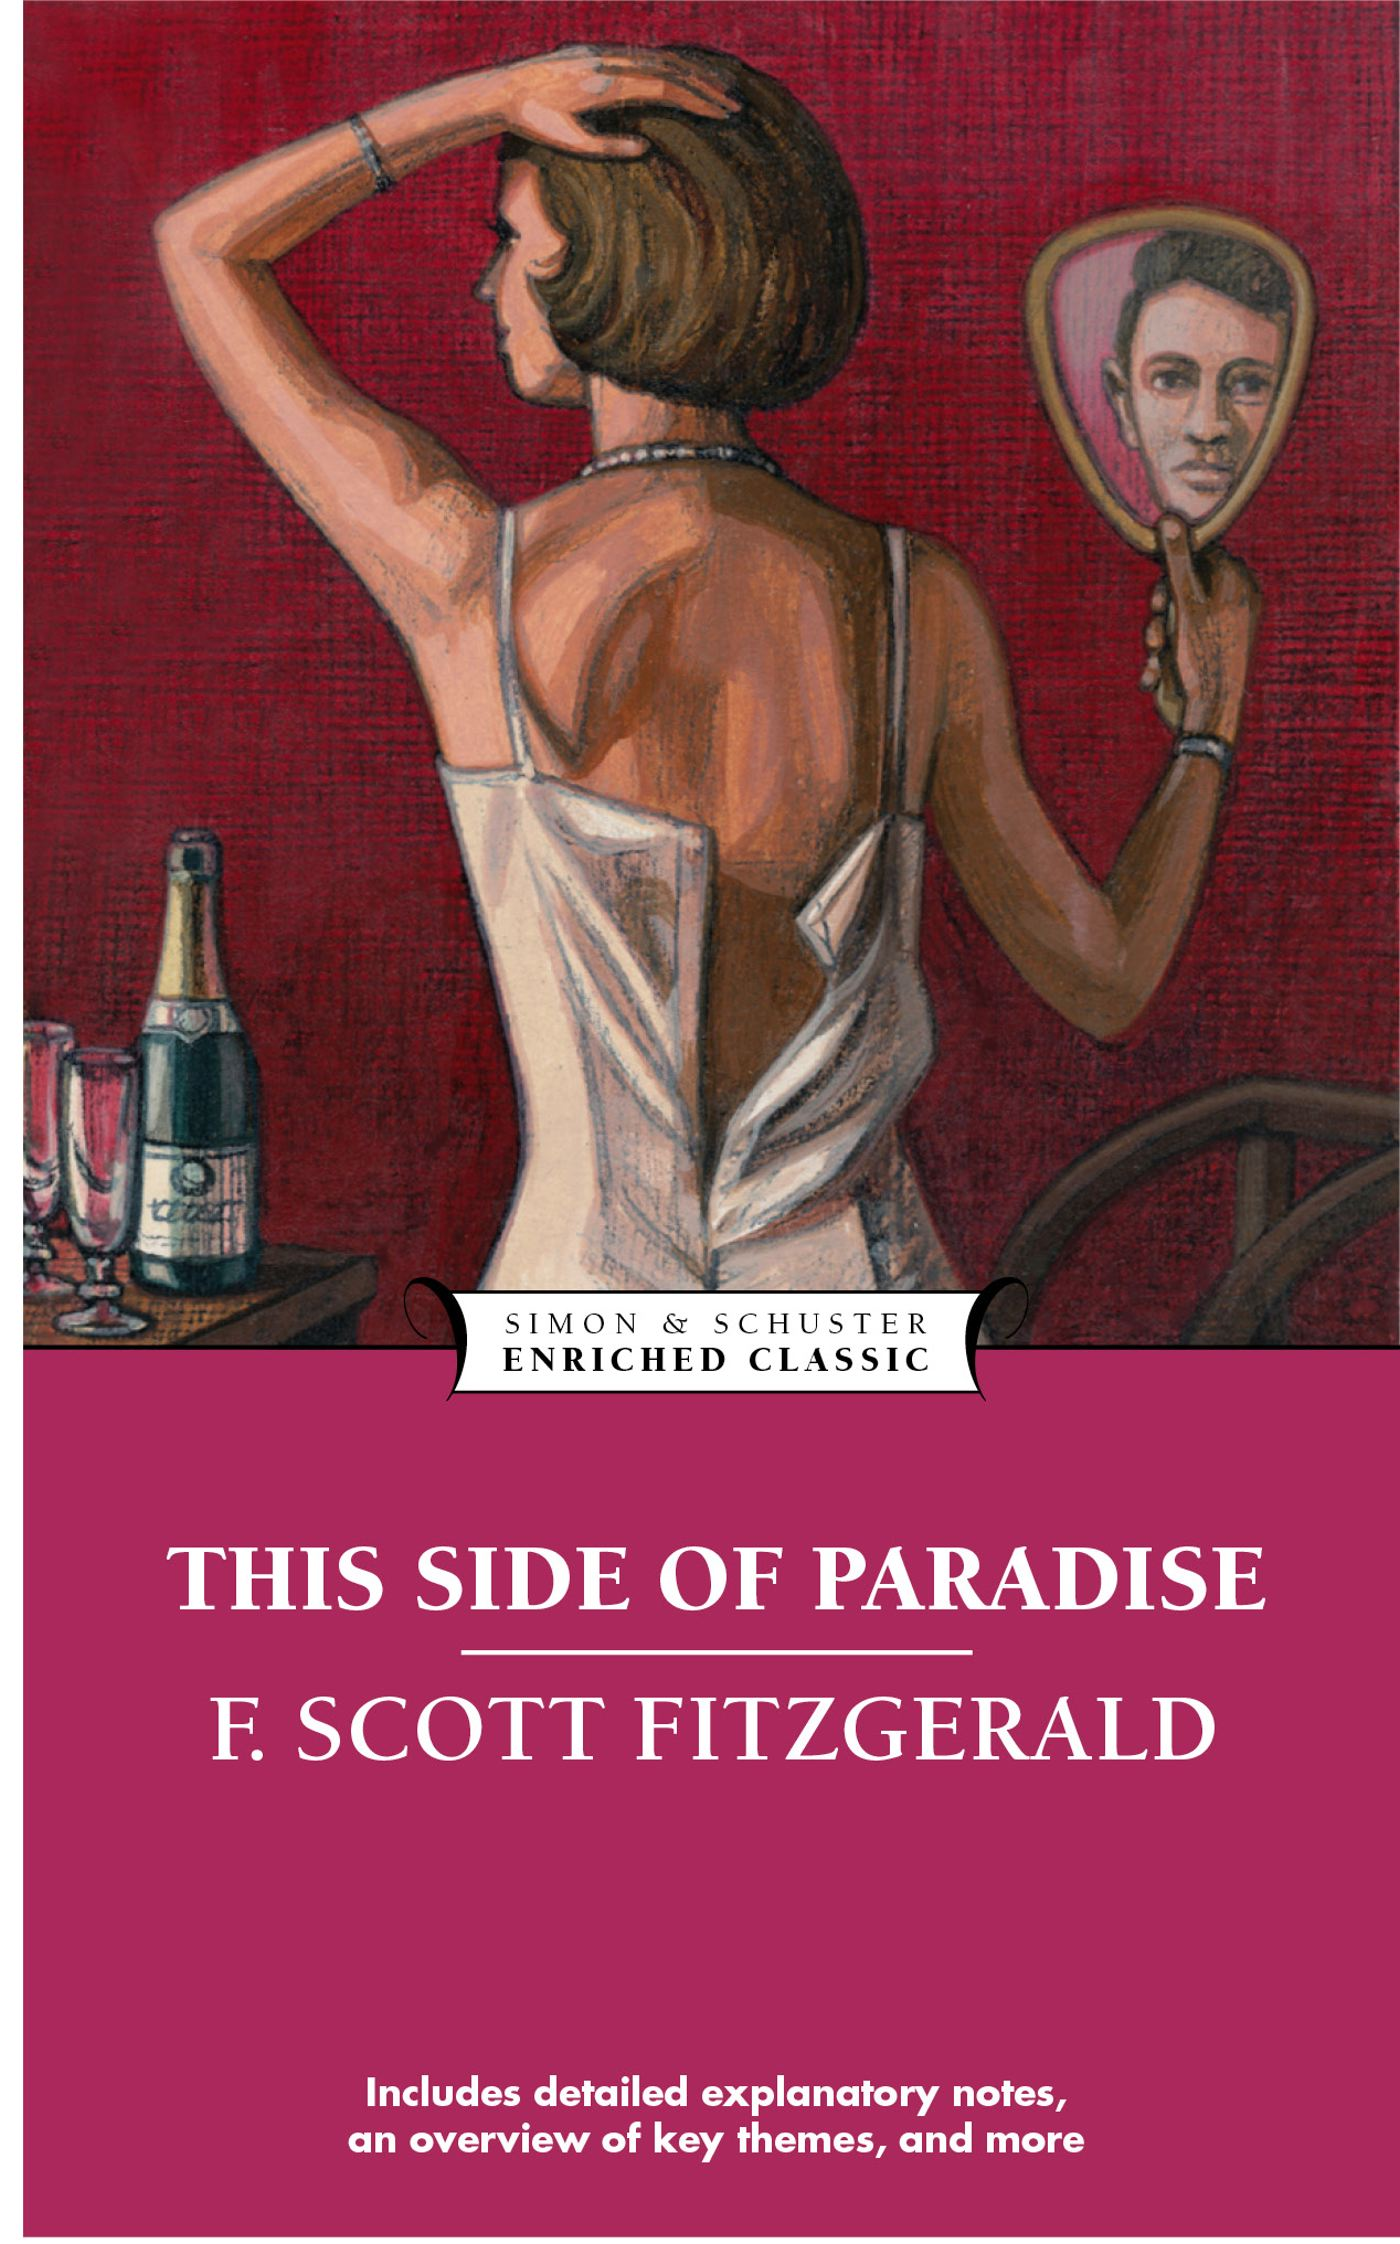 an introduction to the novel this side of paradise by f scott fitzgerald F scott fitzgerald's cherished debut novel announced the arrival of a brilliant   author was just twenty-three, this side of paradise recounts the education of  young  fyodor dostoyevsky translated with an introduction and notes by  david.